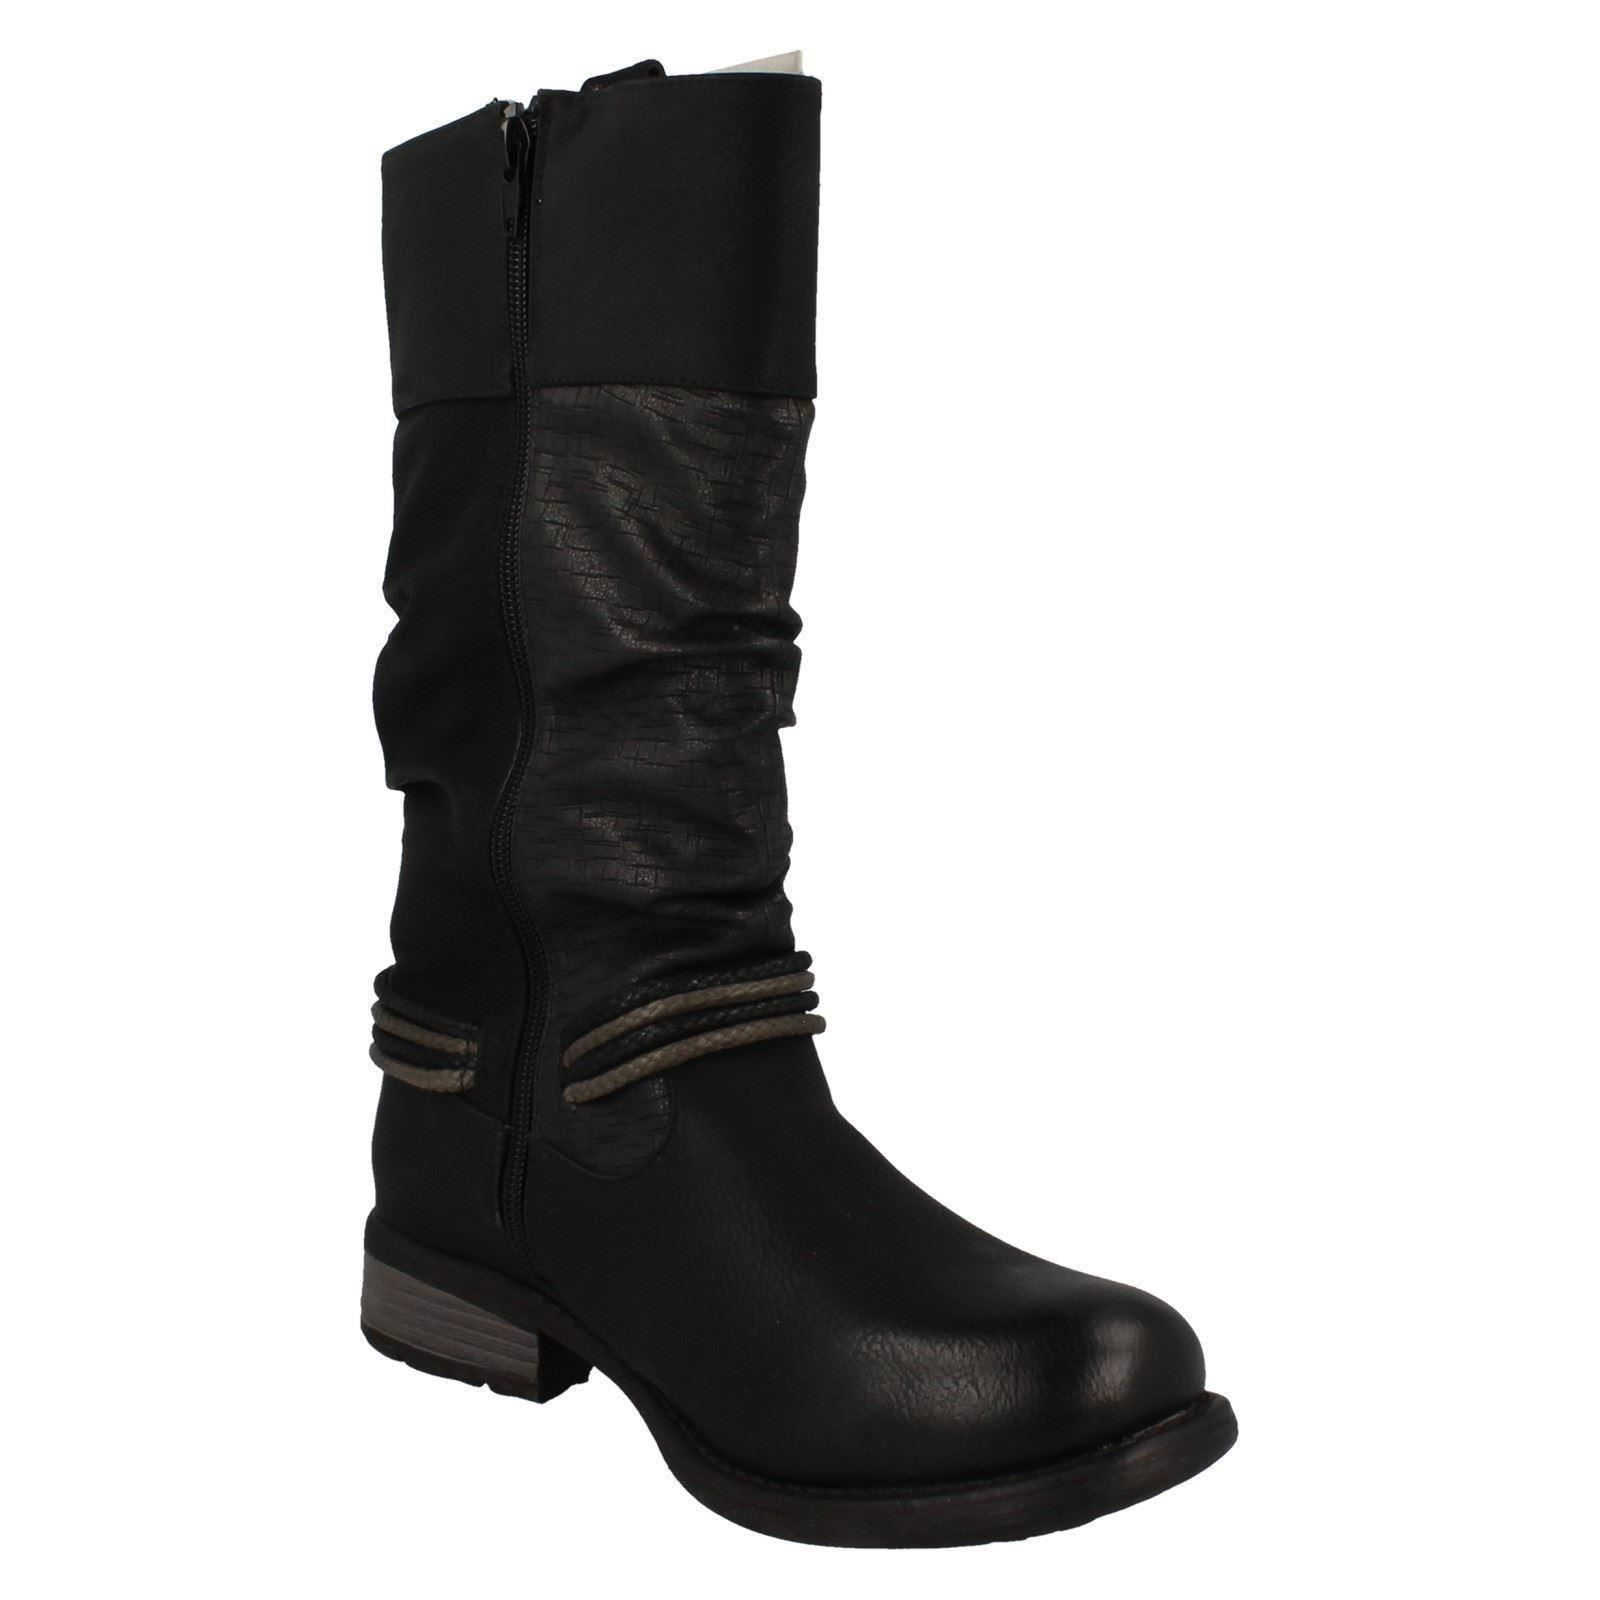 Gentlemen/Ladies Ladies Rieker Boots Label 97279 Comfortable feeling quality stable quality feeling cheaper abe40f